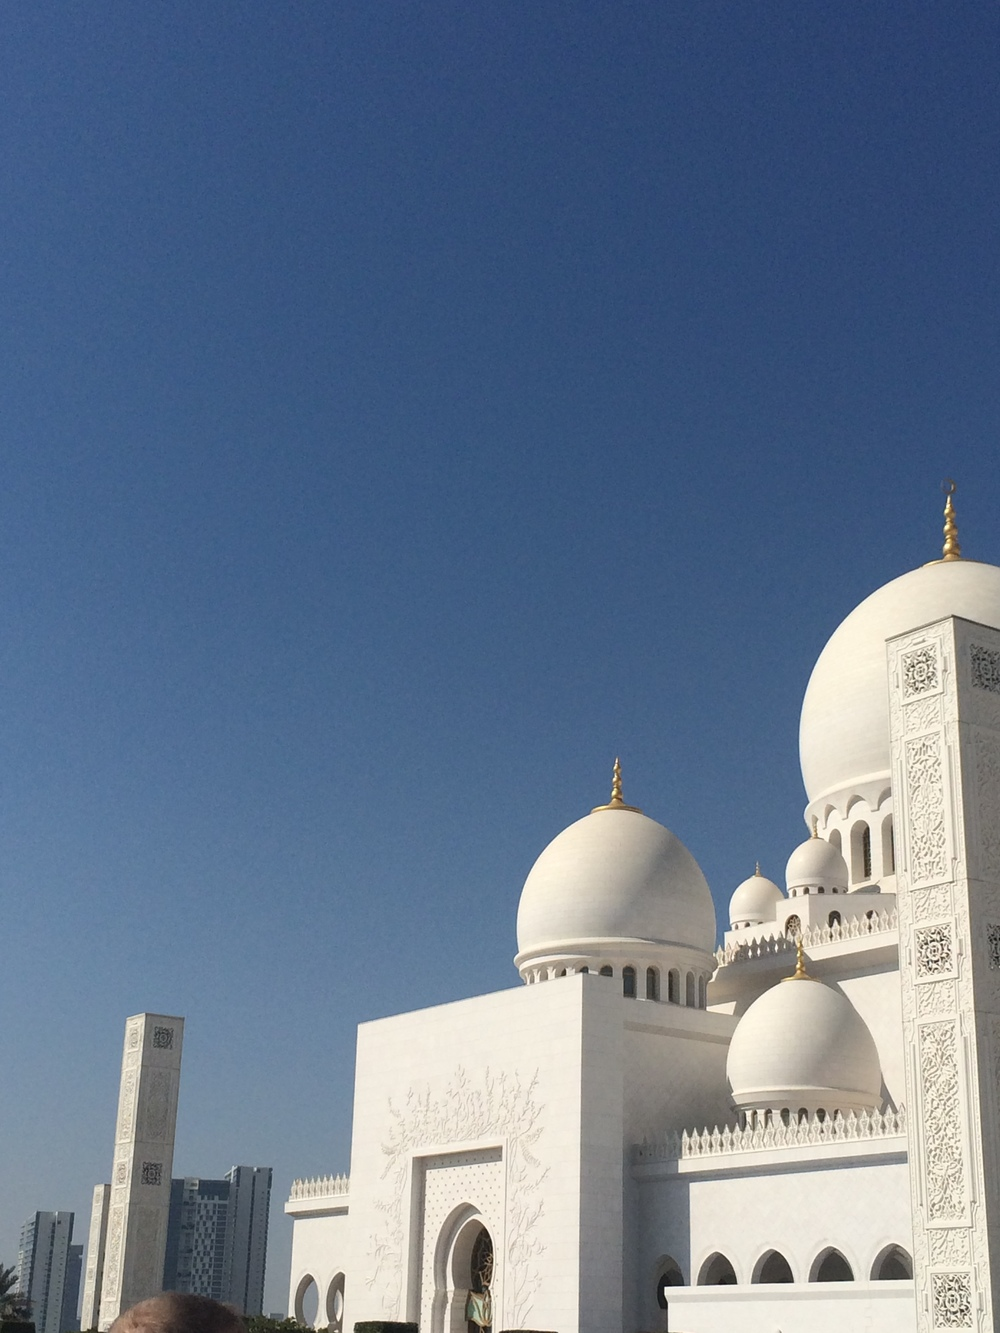 A jaw dropping trip to the Grand Mosque